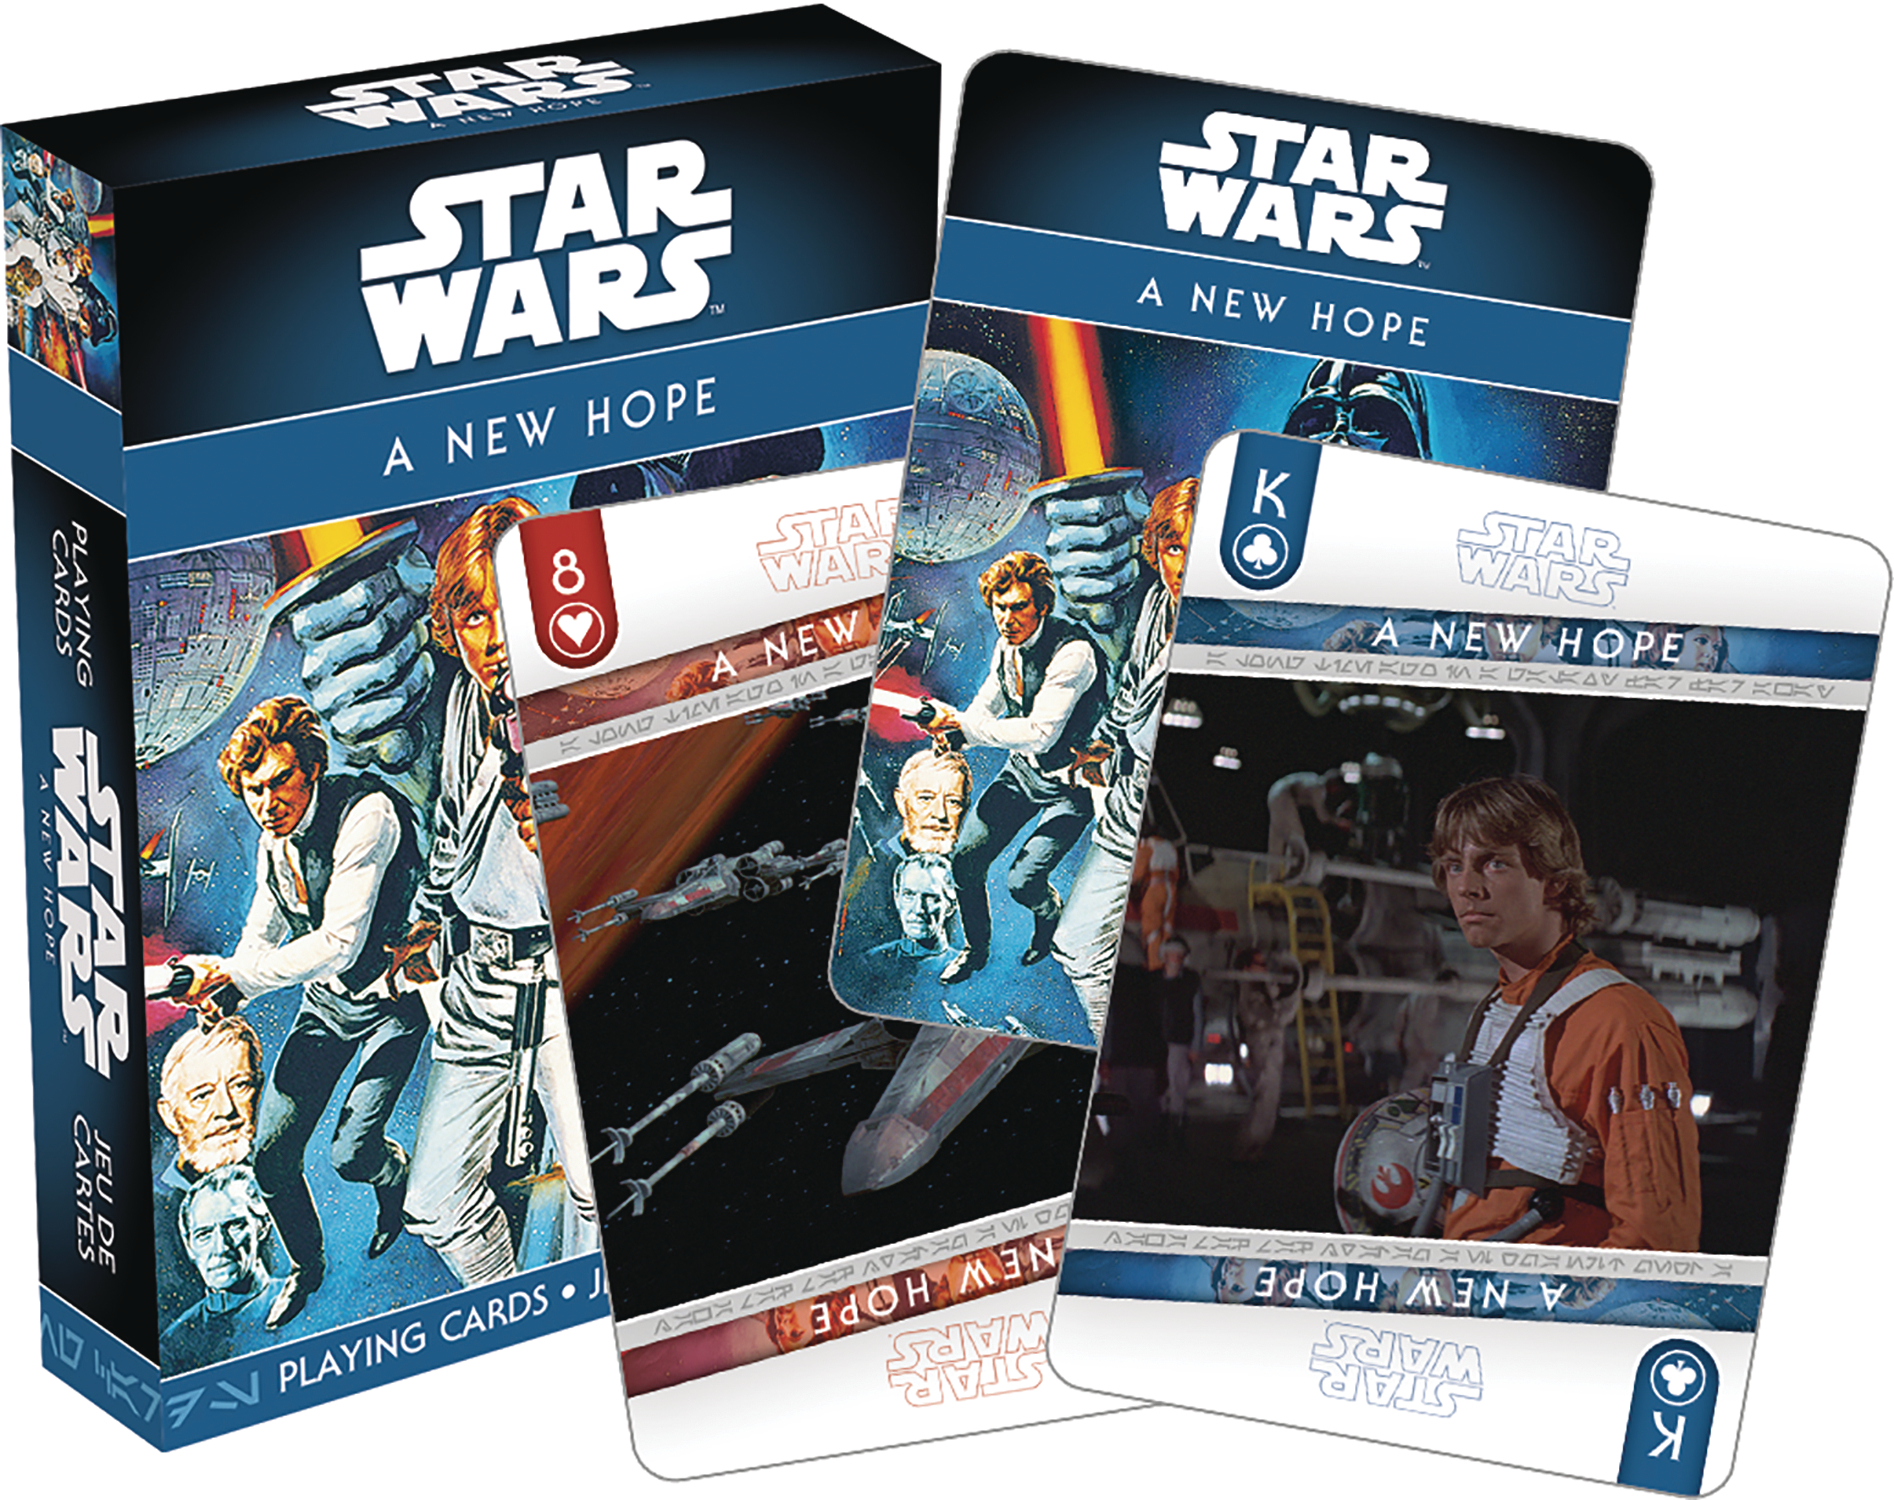 STAR WARS EPISODE 4 PLAYING CARDS